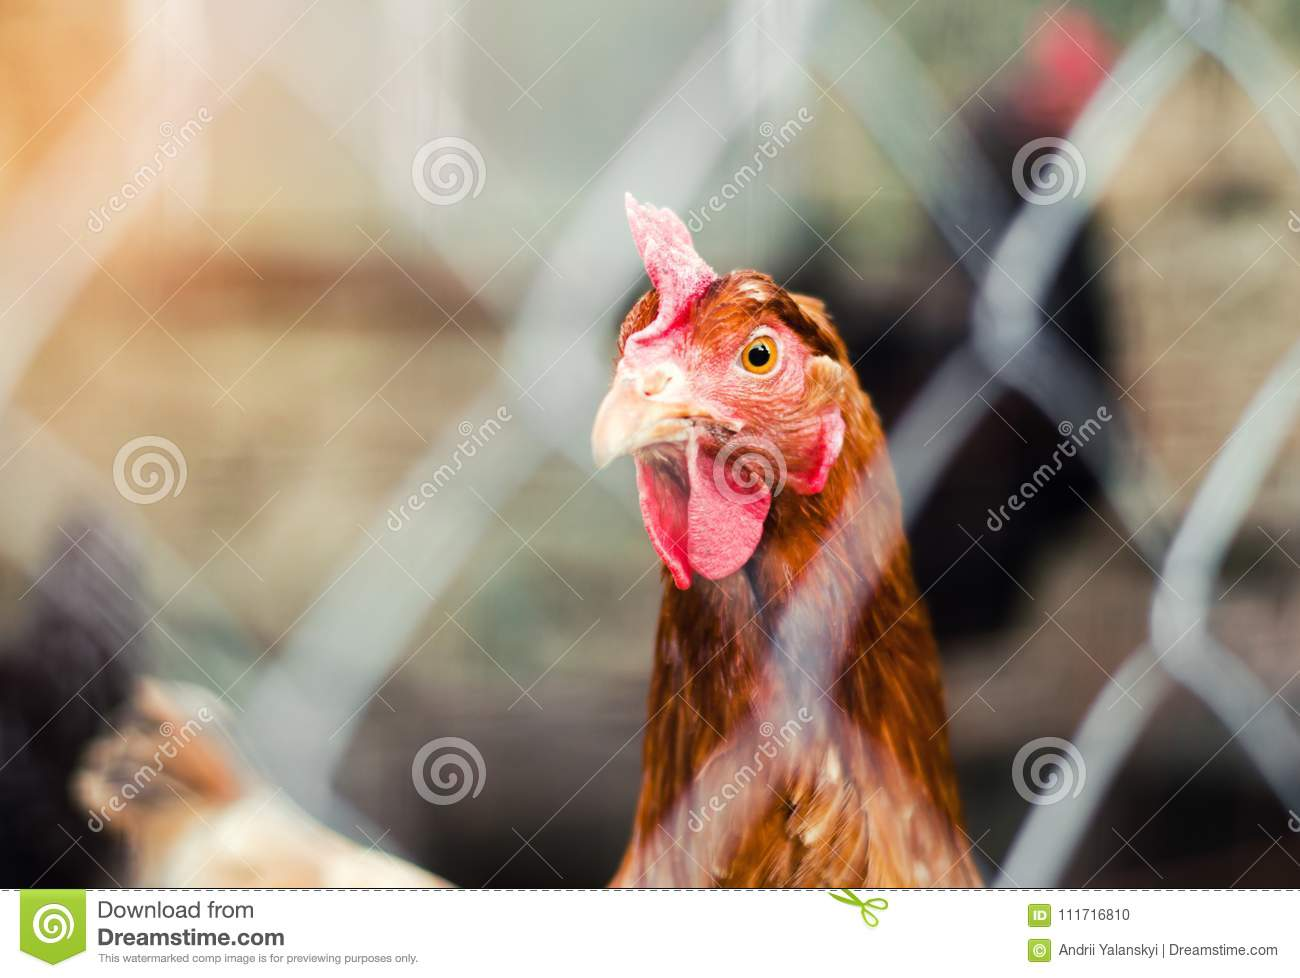 Chicken in a hen-house close-up, poultry, farming, chicken eggs